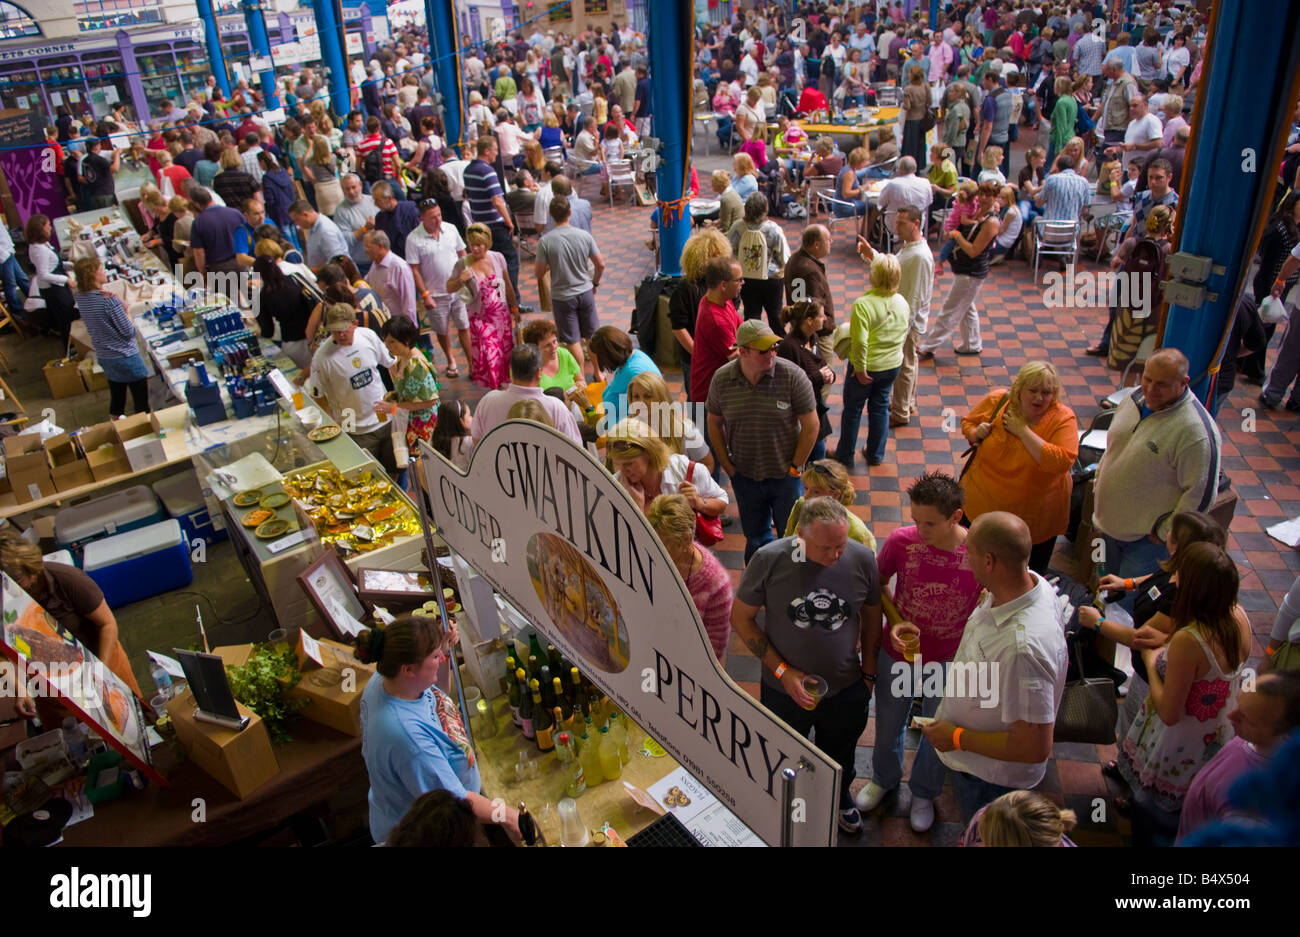 Crowds of people wander sit and browse stalls ain Market Hall at Abergavenny Food Festival - Stock Image